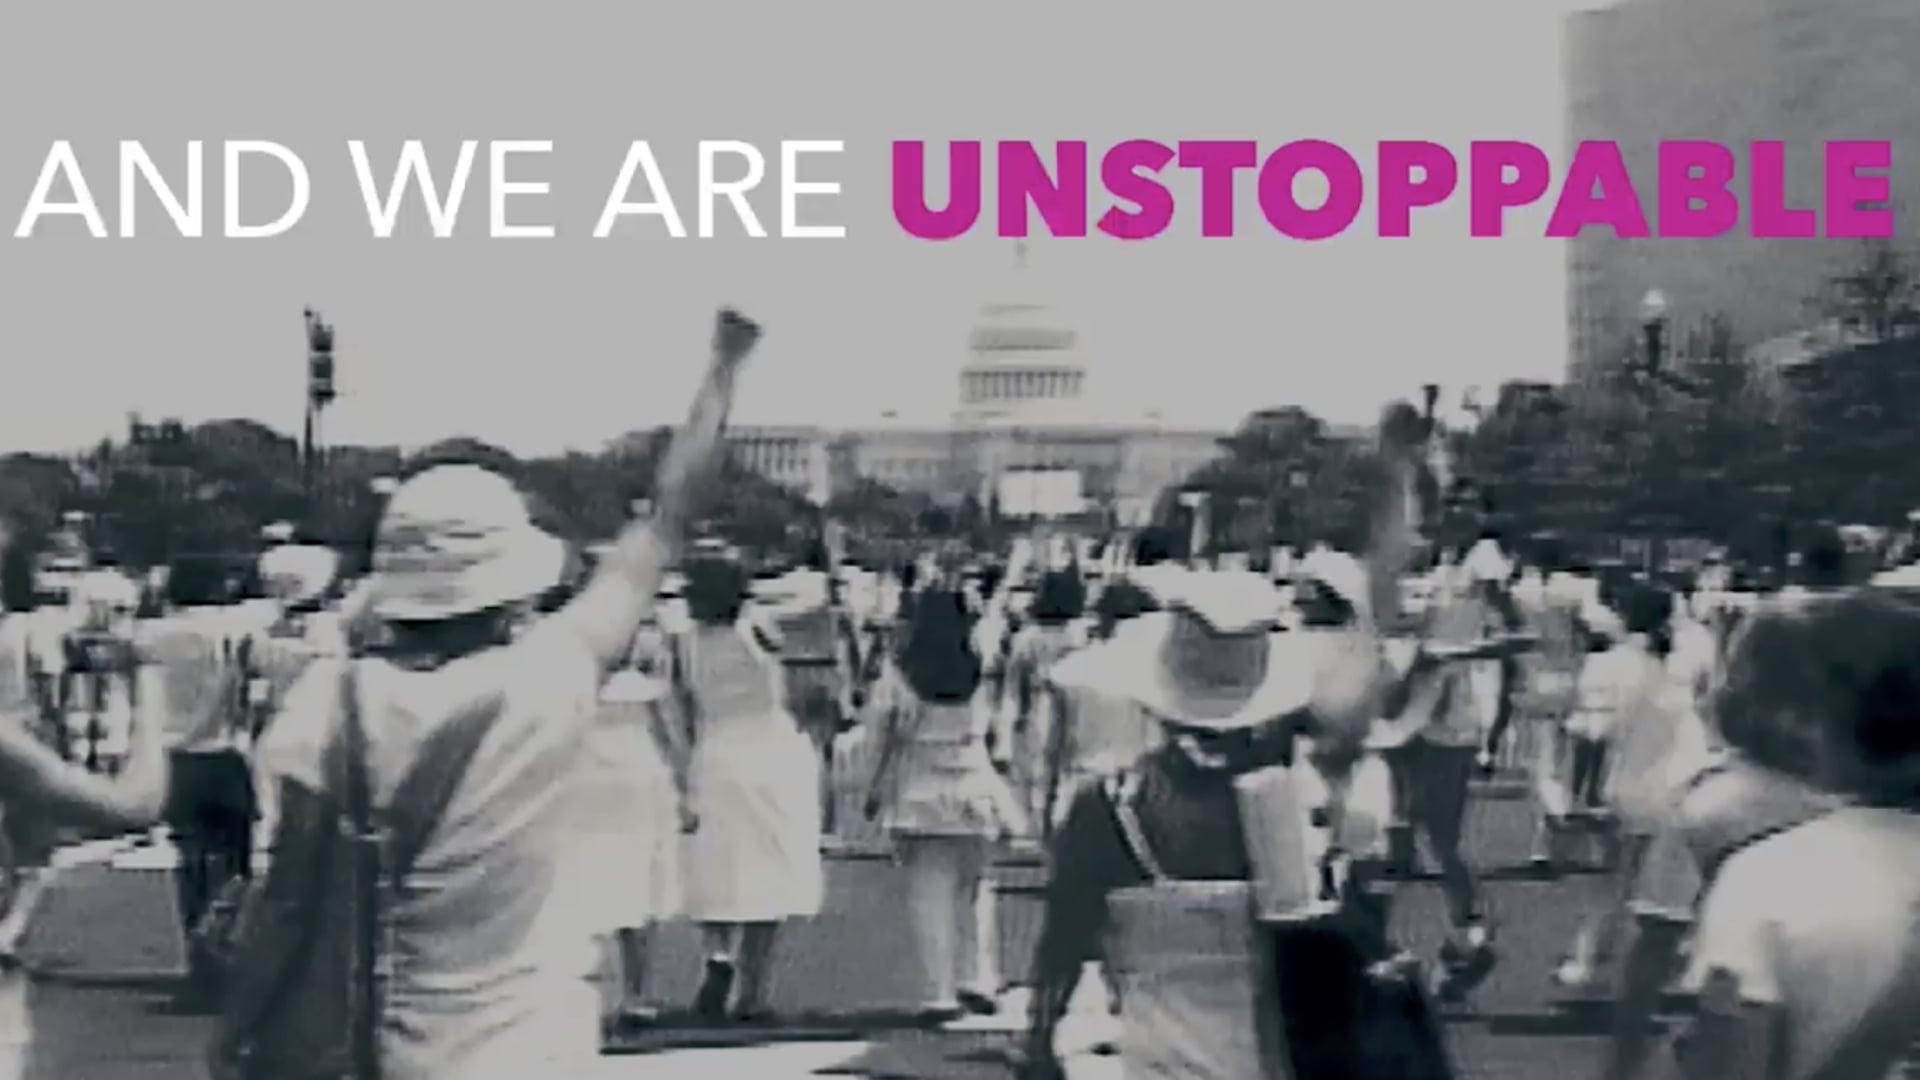 UNSTOPPABLE directed by @TiffanyShlain